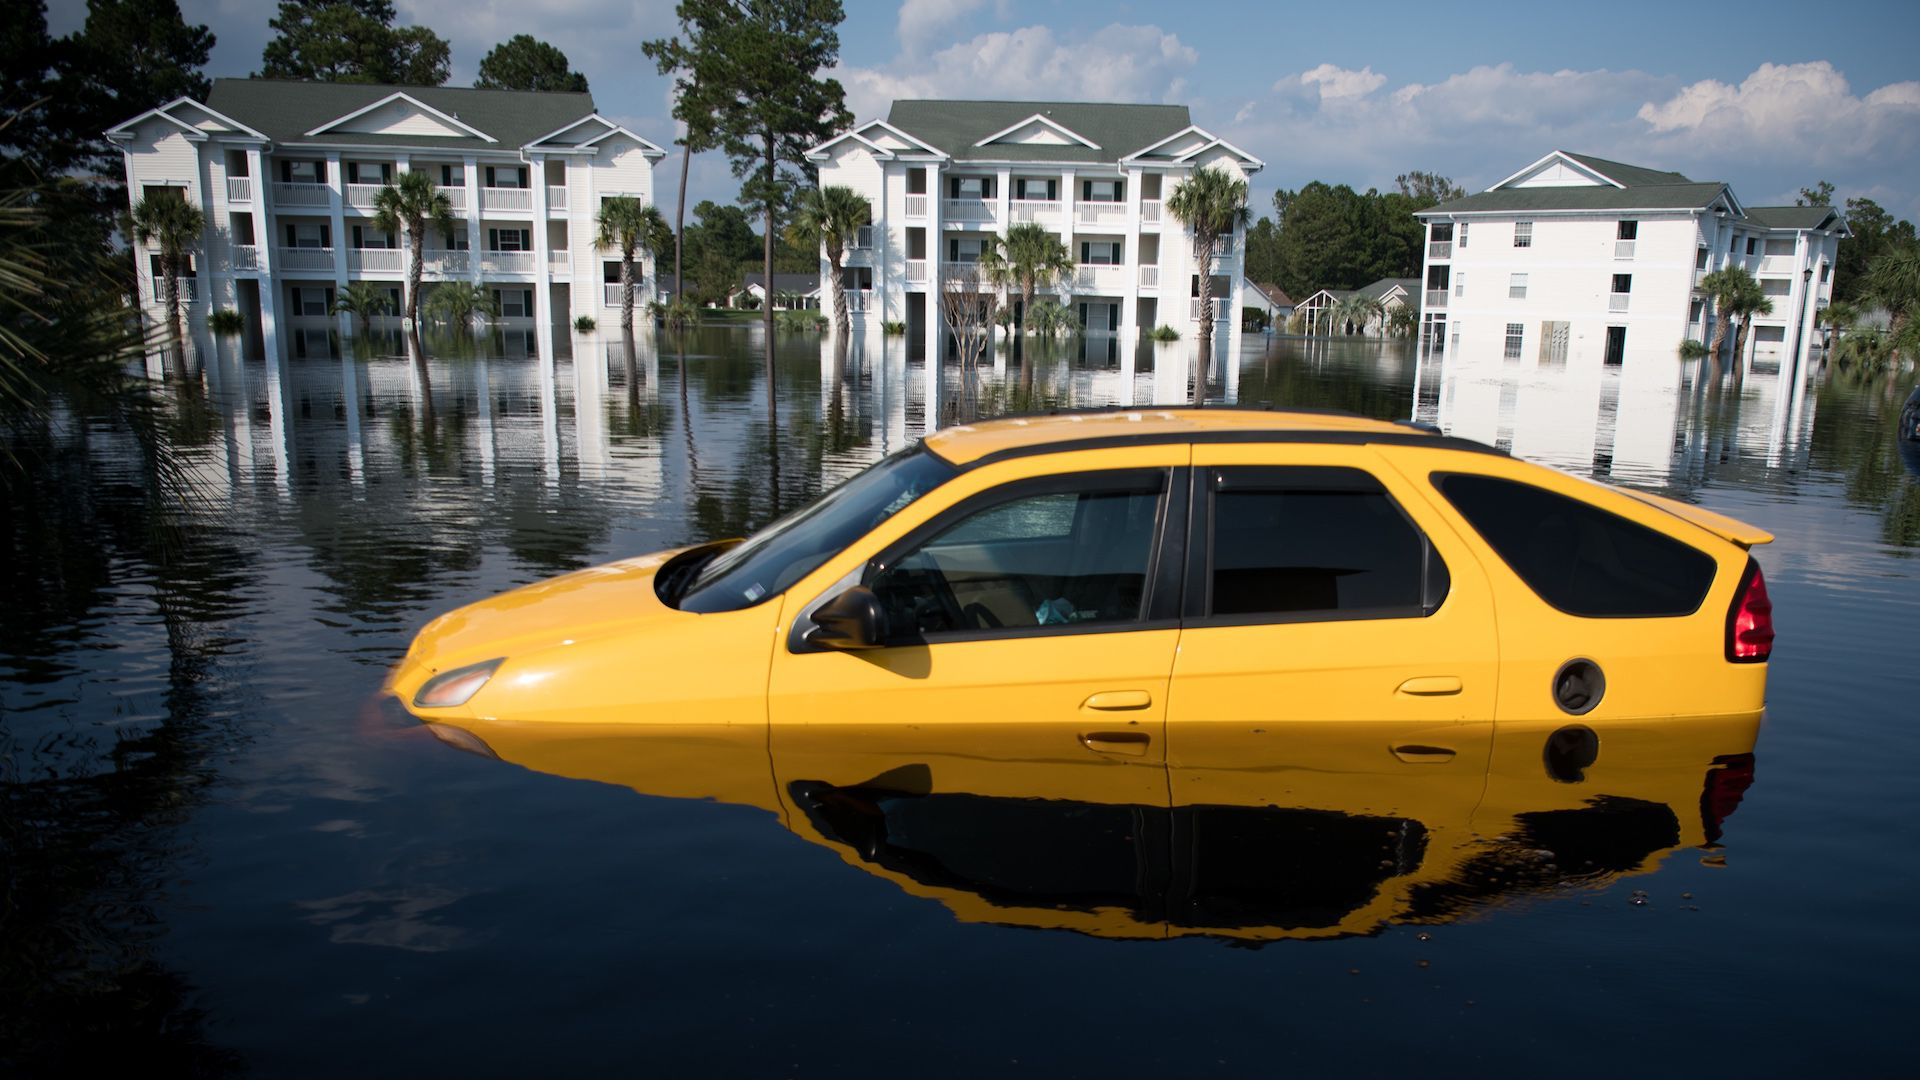 A car is inundated with floodwaters caused by Hurricane Florence at an apartment complex at Aberdeen Country Club on September 20, 2018 in Longs, South Carolina.